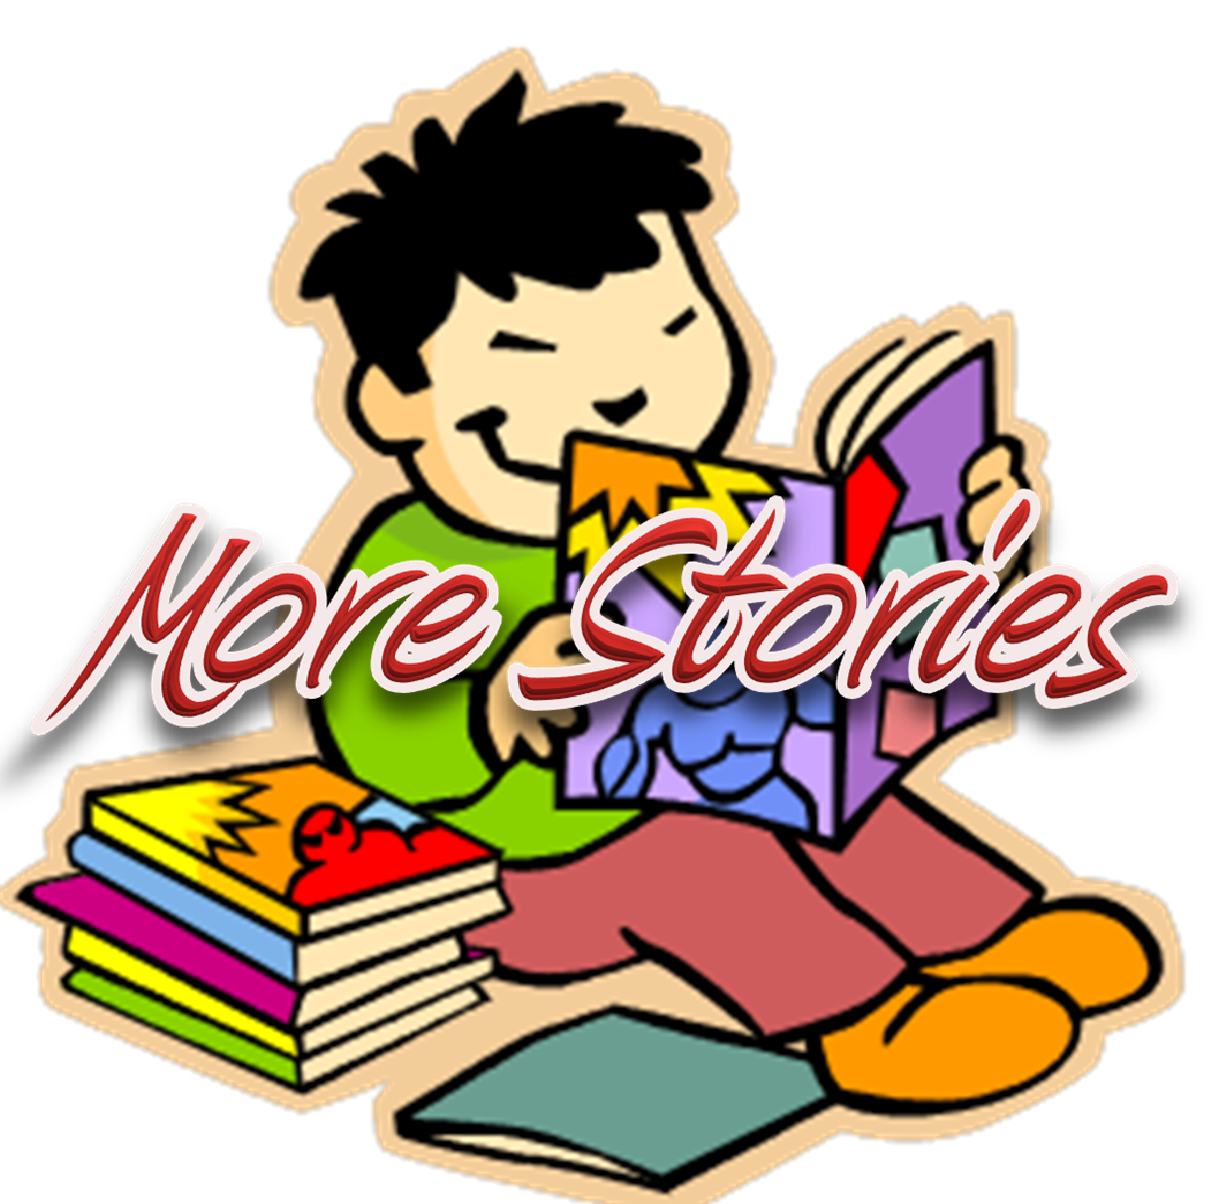 Daycare clipart homeschool. More stories learning language